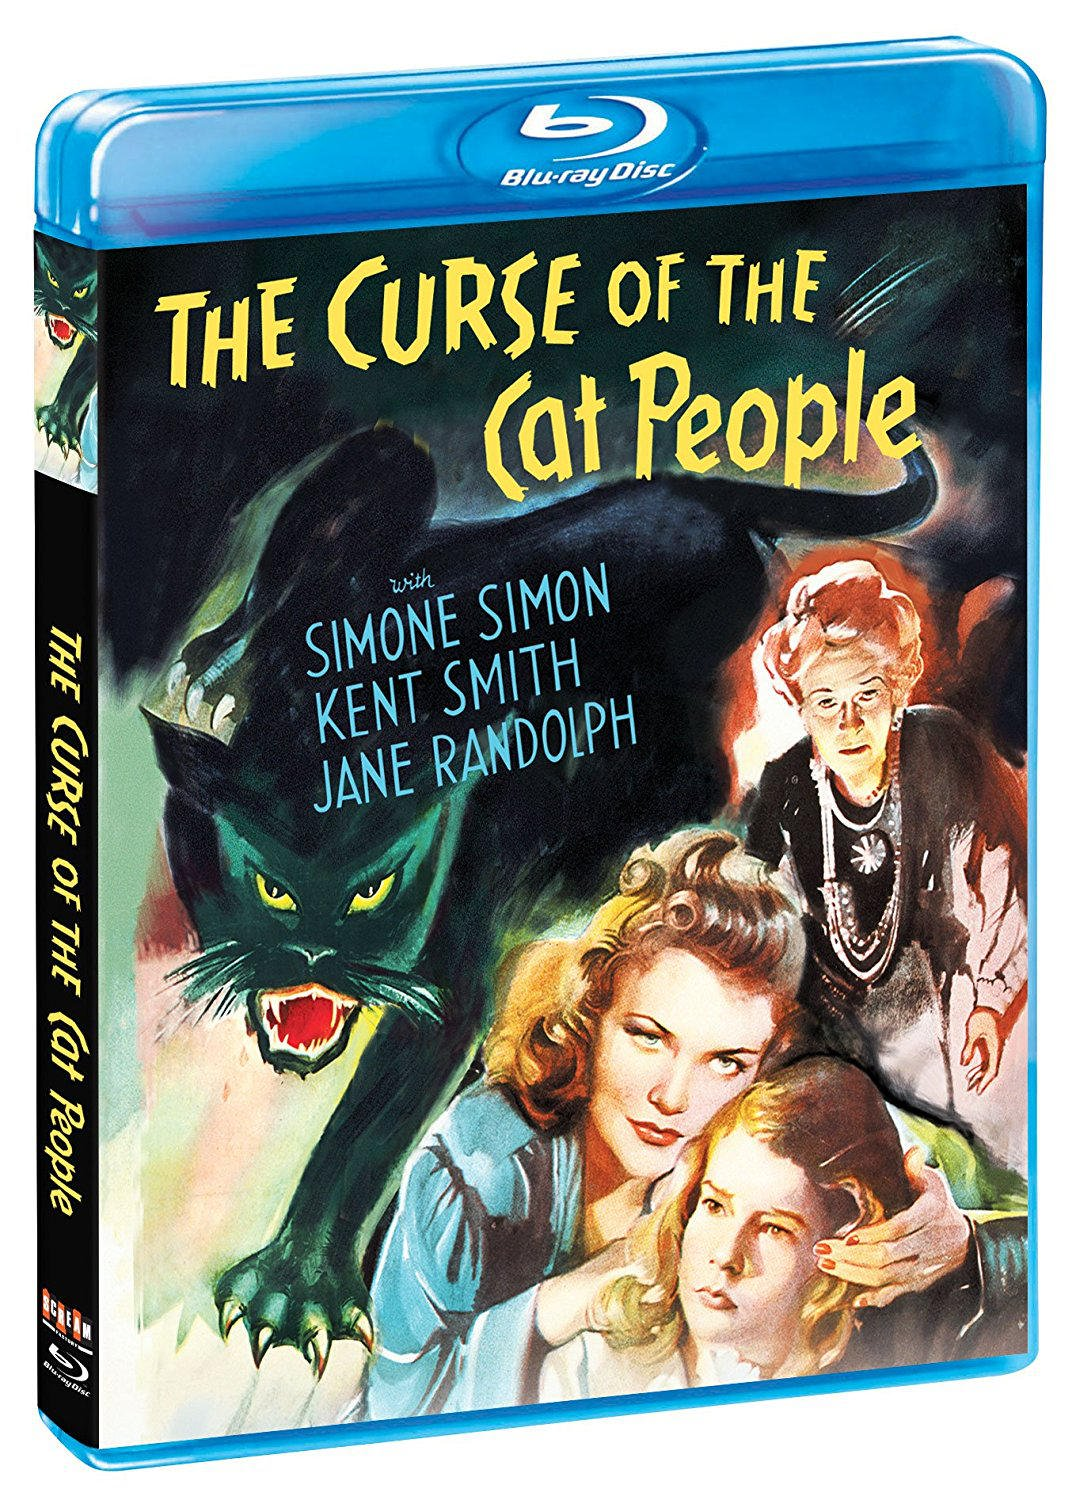 Ann Carter and Simone Simon in The Curse of the Cat People (1944)